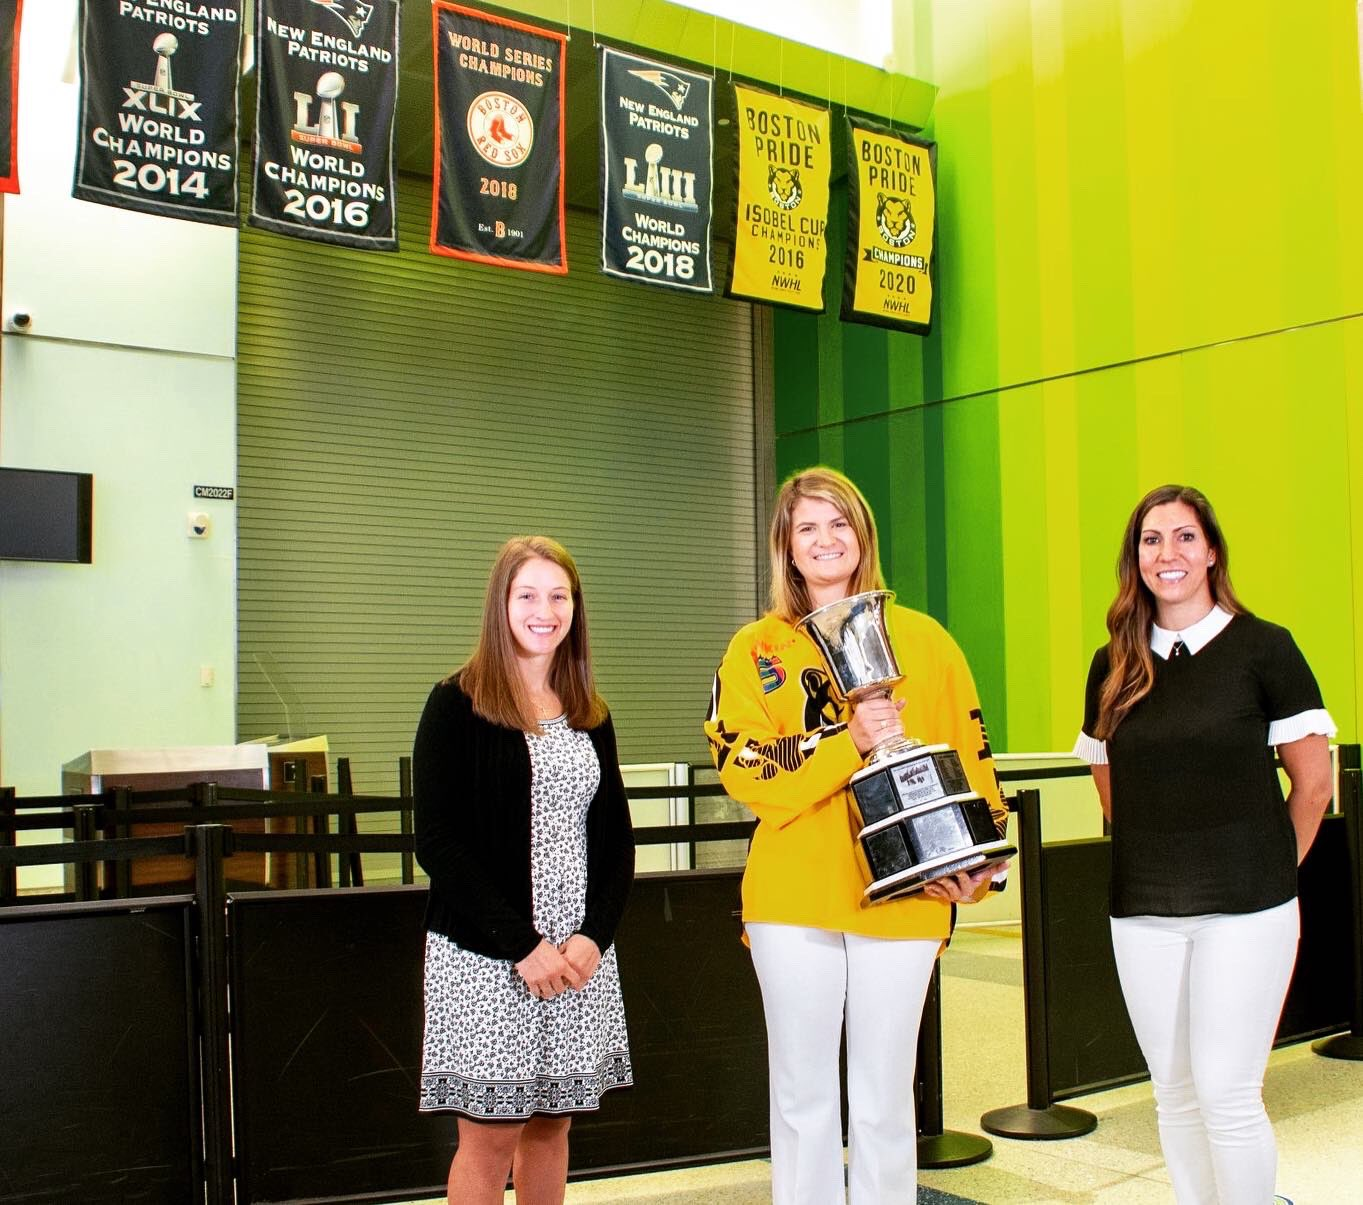 The Boston Pride hockey team have hung their championship banners at Logan Airport. ICL printed the banners for them.